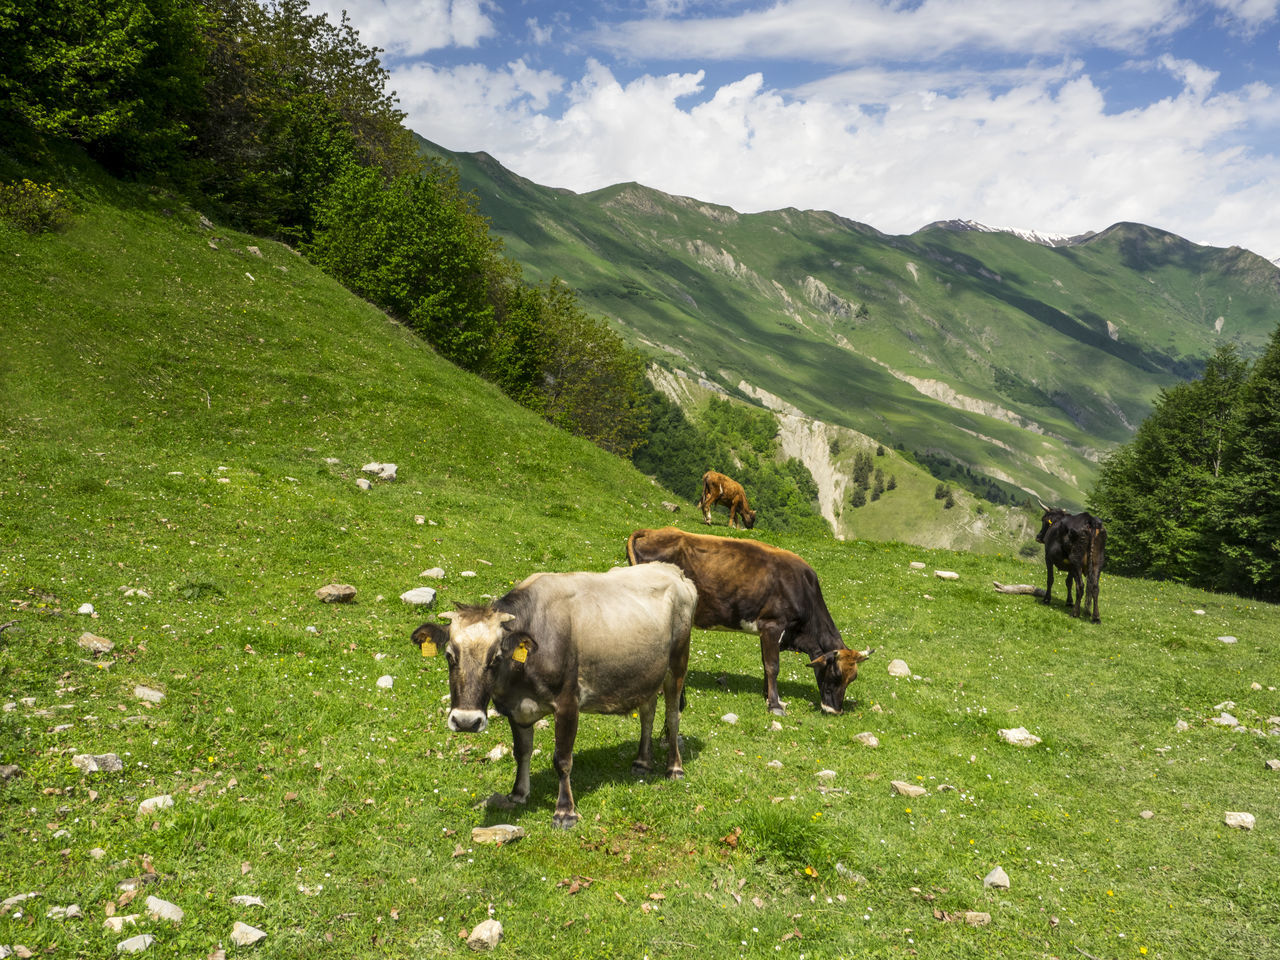 High Angle View Of Cows Grazing In Meadow On Hill